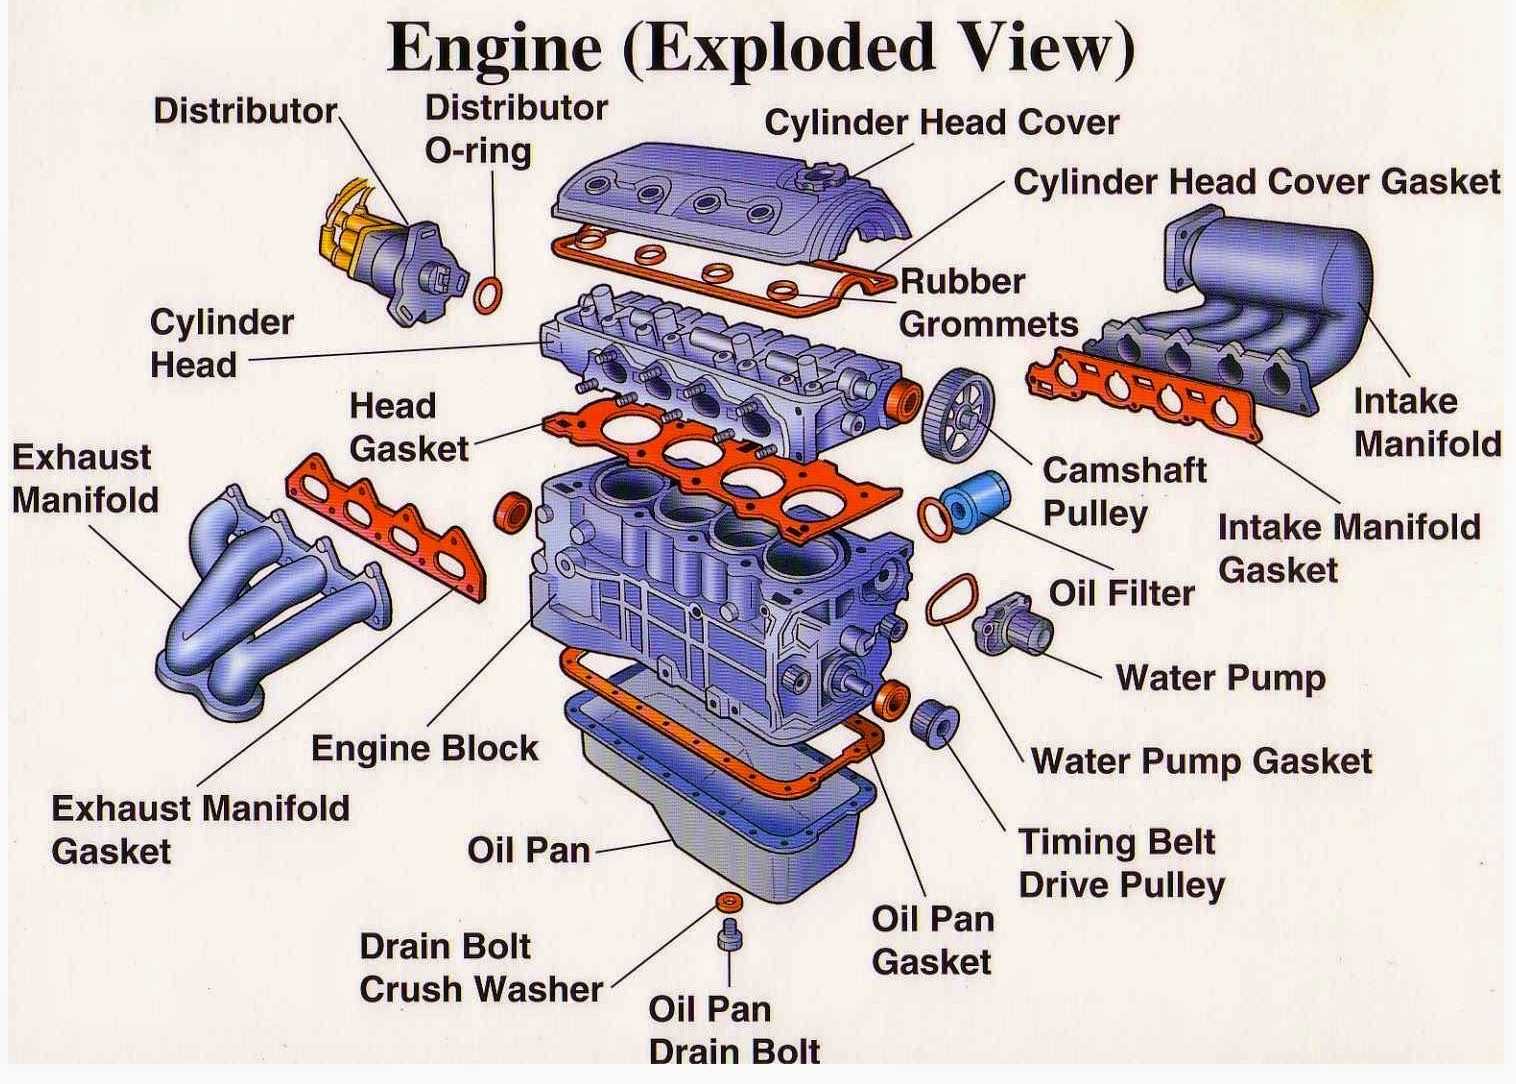 engine parts exploded view electrical engineering world rh pinterest com v8 engine exploded diagram engine exploded view diagram